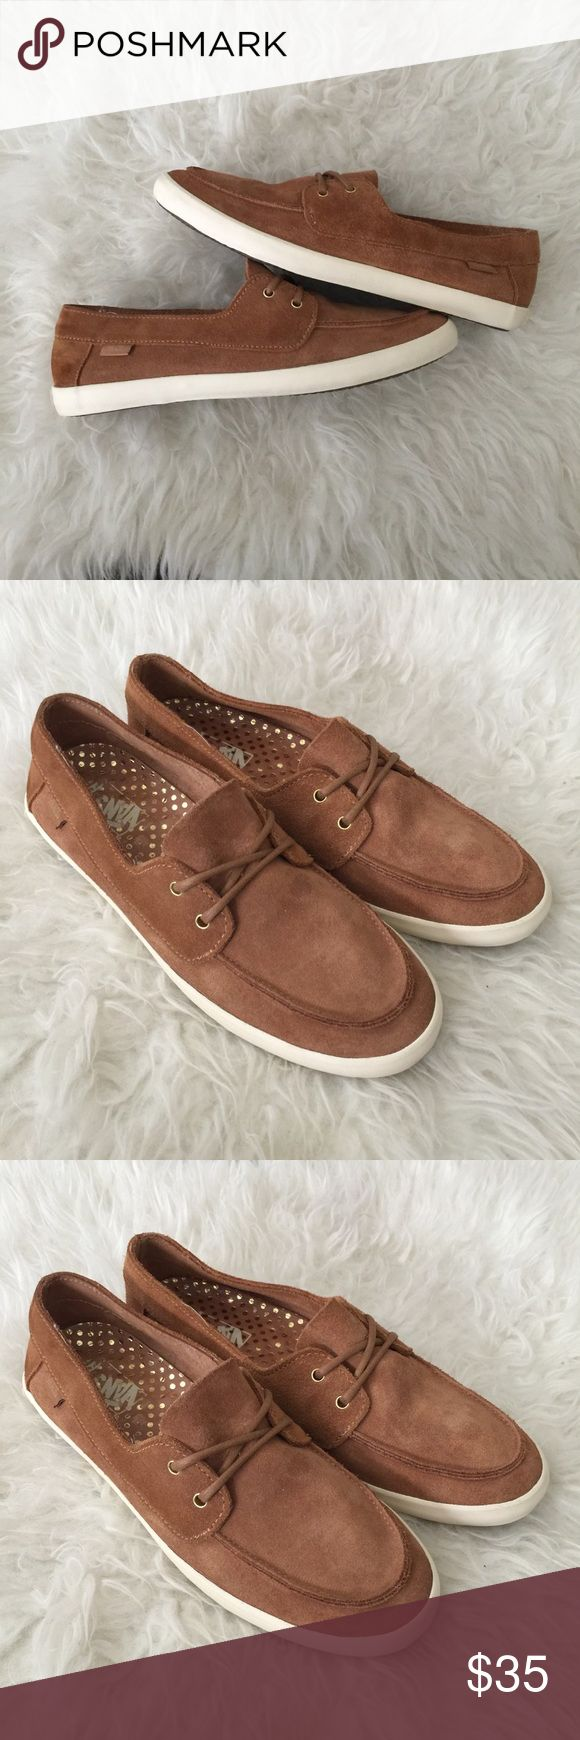 Women's vans cognac suede shoes. Can boat shoes Excellent used condition, only worn a few times. Very minimal wear. Please review photos for details and measurements. No trades Vans Shoes Flats & Loafers